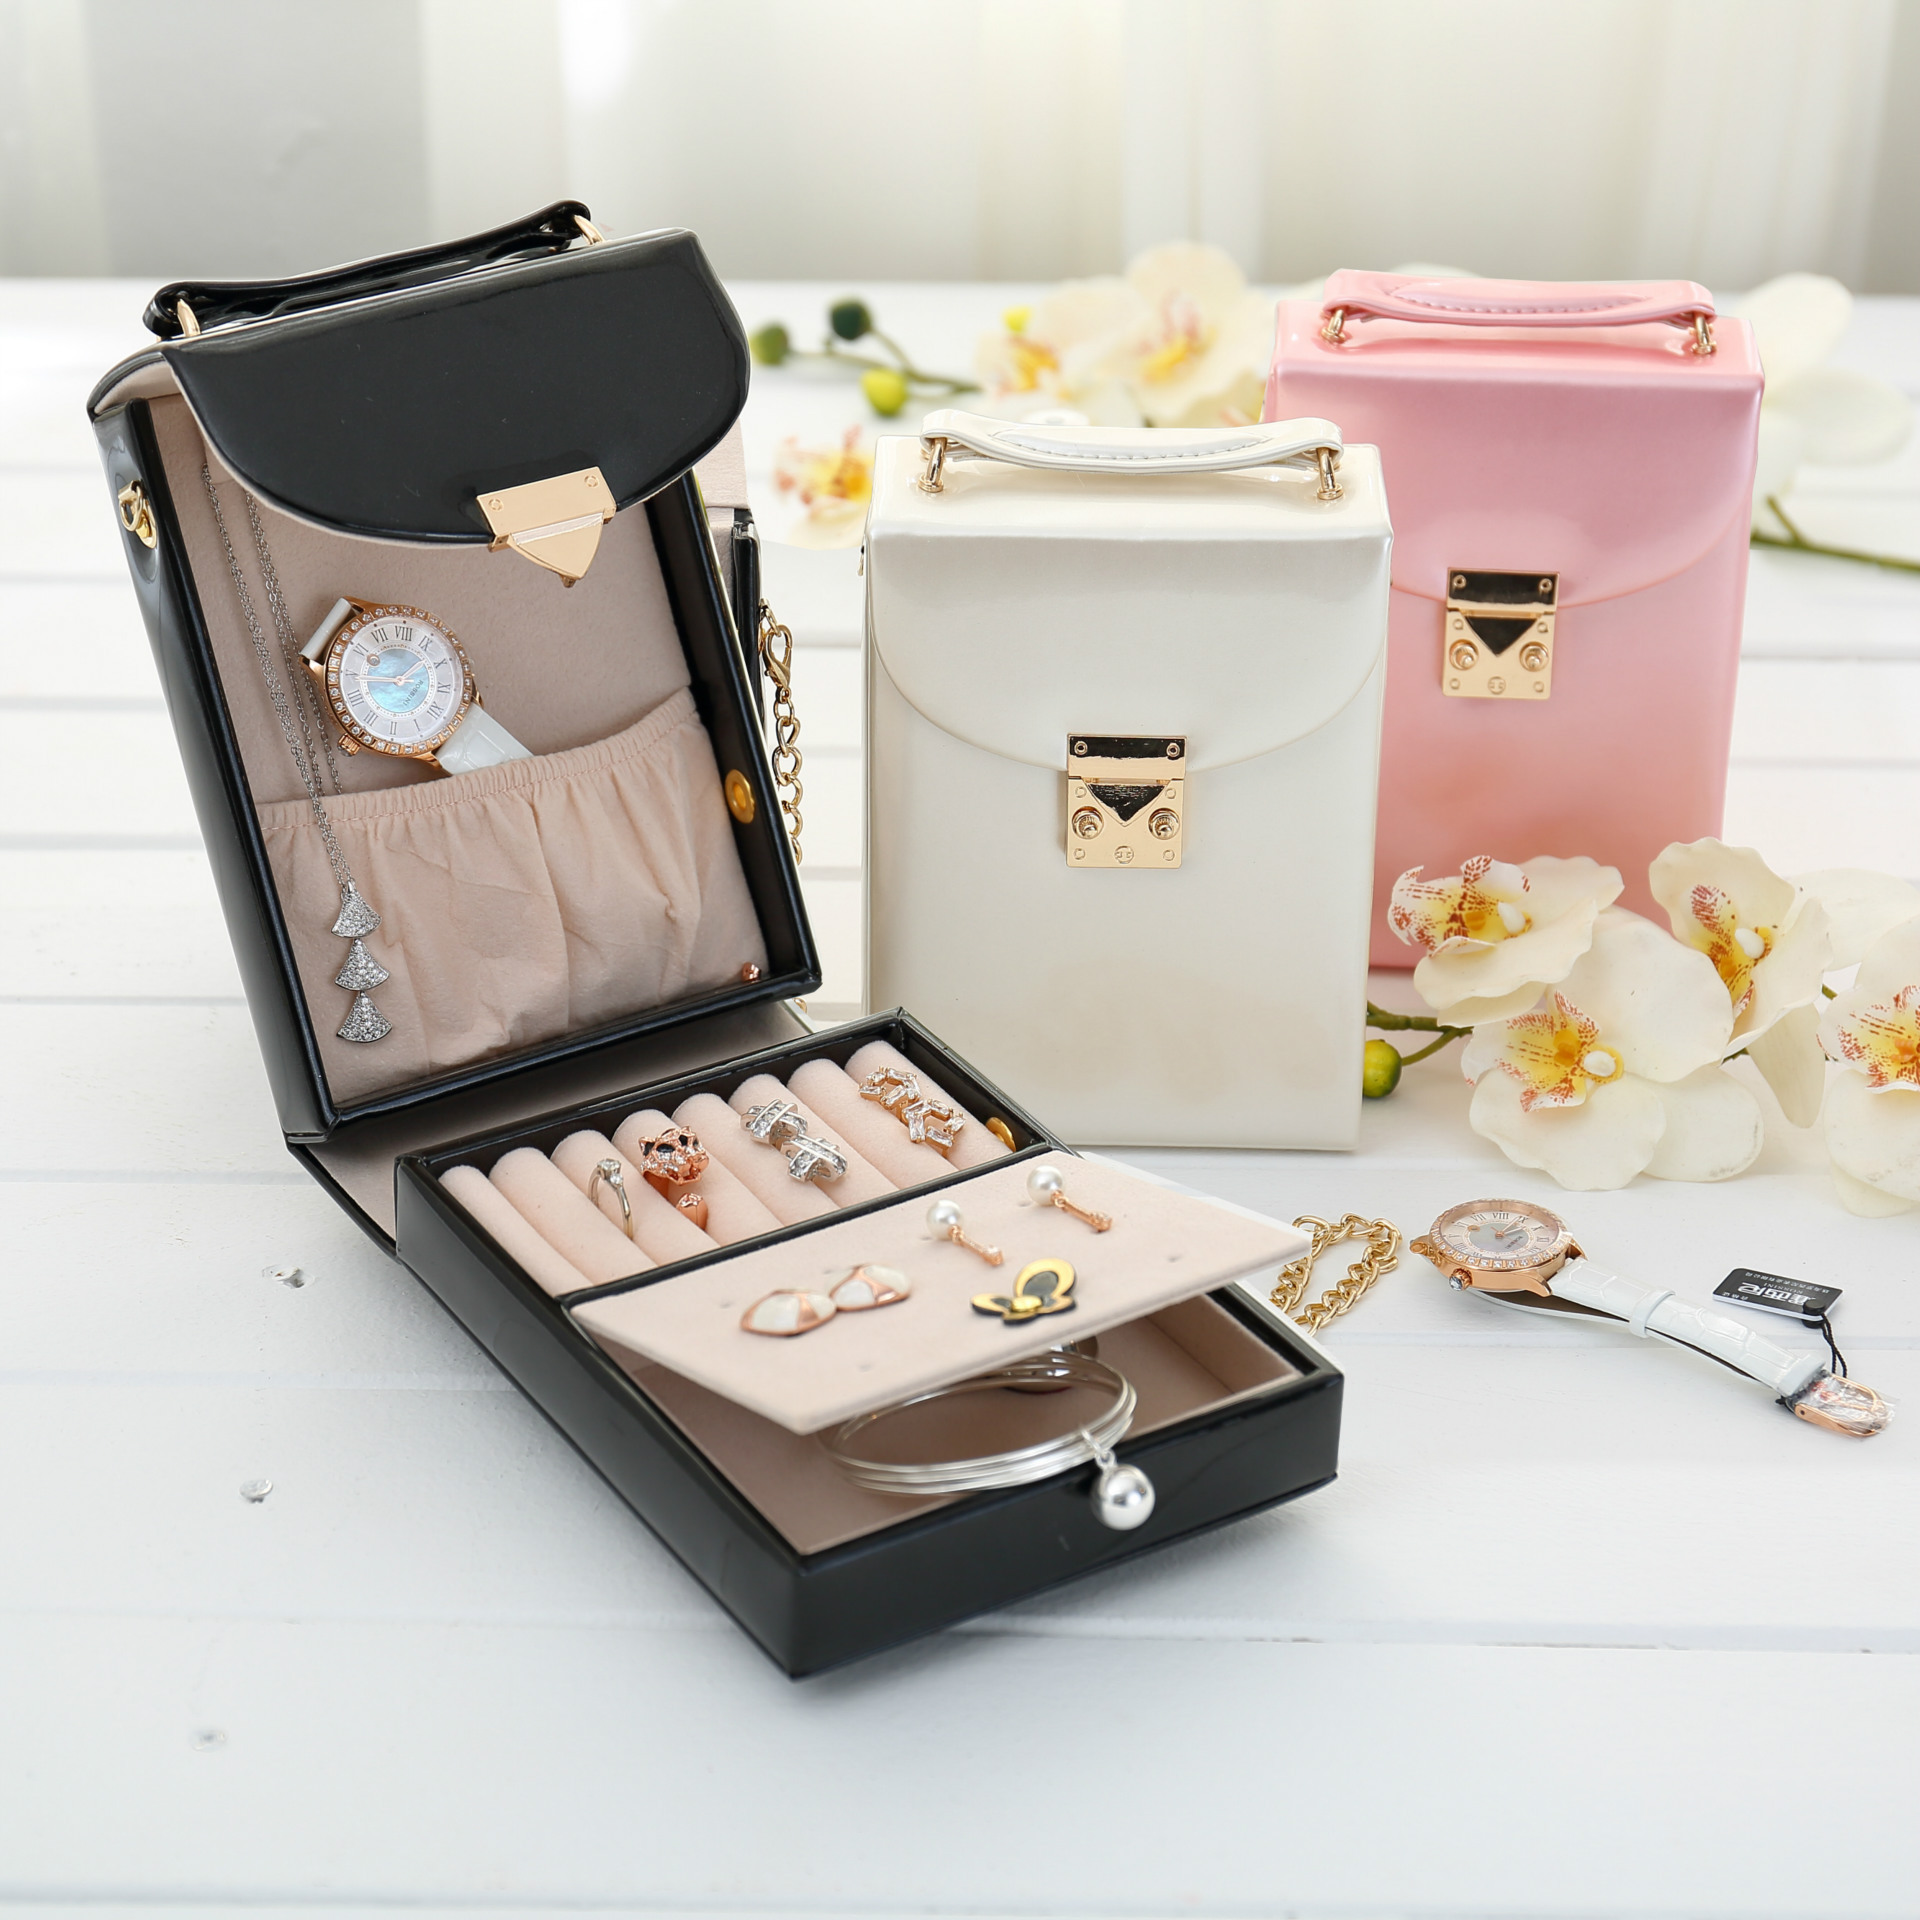 LASPERAL Earring Desktop Container Women Cosmetic Organizer Makeup Storage Box Portable Jewelry Box Casket For Decoration